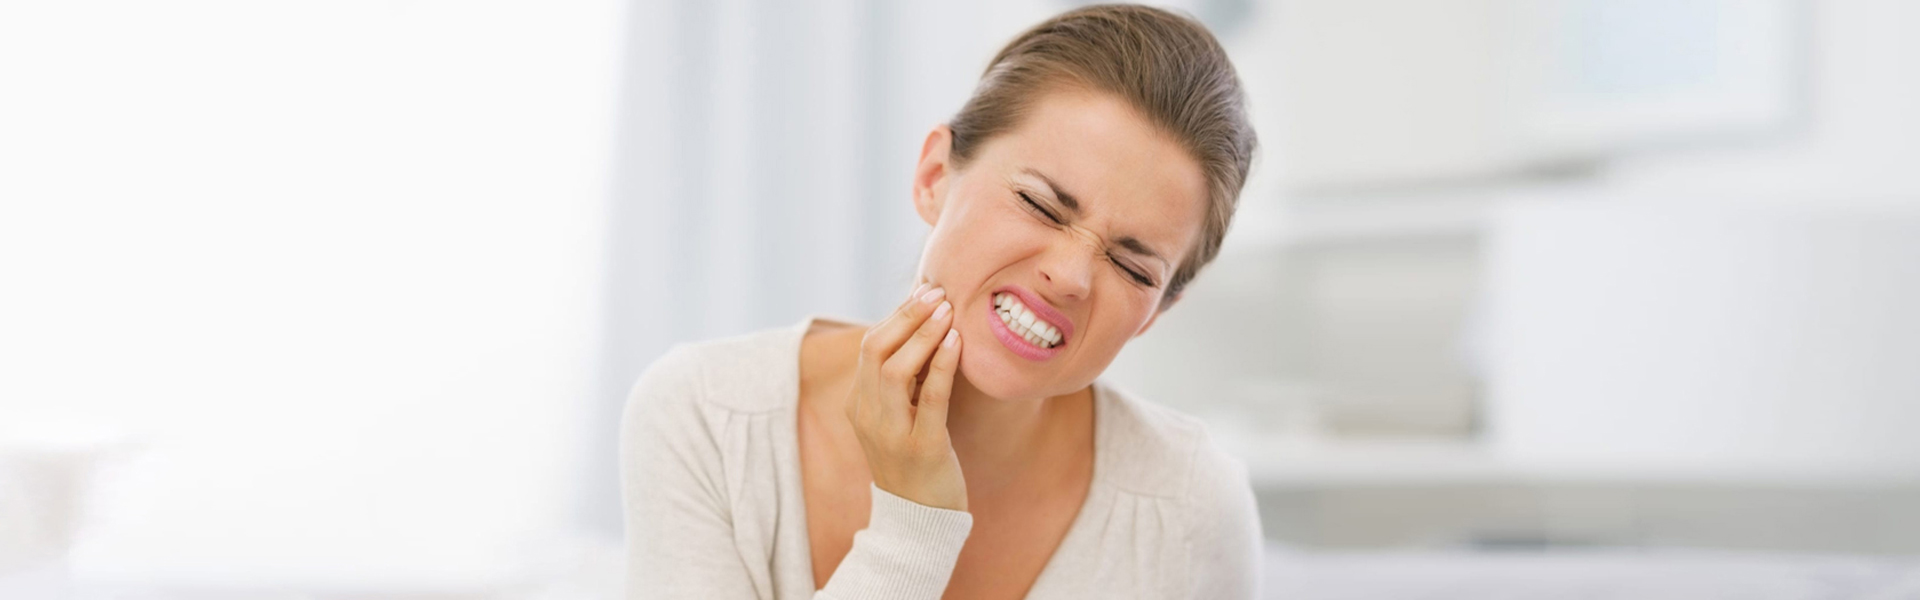 Cavity Prevention among Children and Teenagers Is Convenient with Dental Sealants